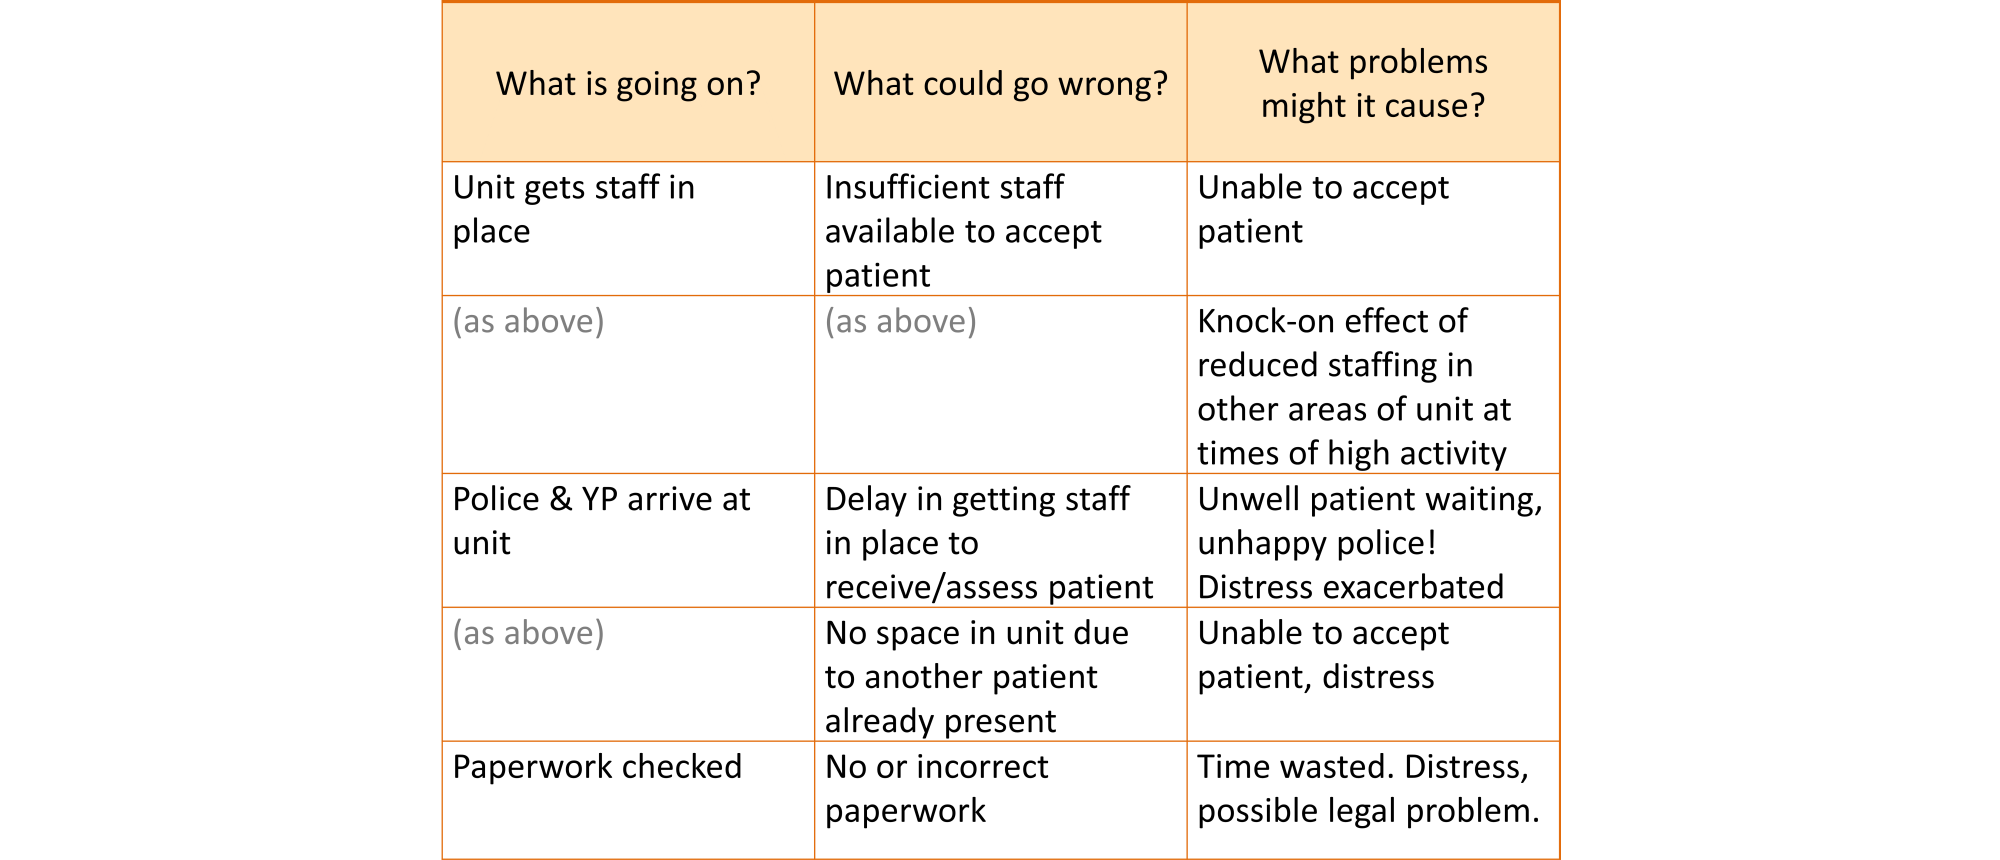 Portion of a risk table, showing problems that might be caused by things going wrong in the system. For example, if there is insufficient staff available to accept the patient, this may result in the unit being unable to accept the patient. Alternatively, they may accept the patient by pulling staff from other areas of the unit. This would create a knock-on effect of reduced staffing in these other areas at times of high activity.